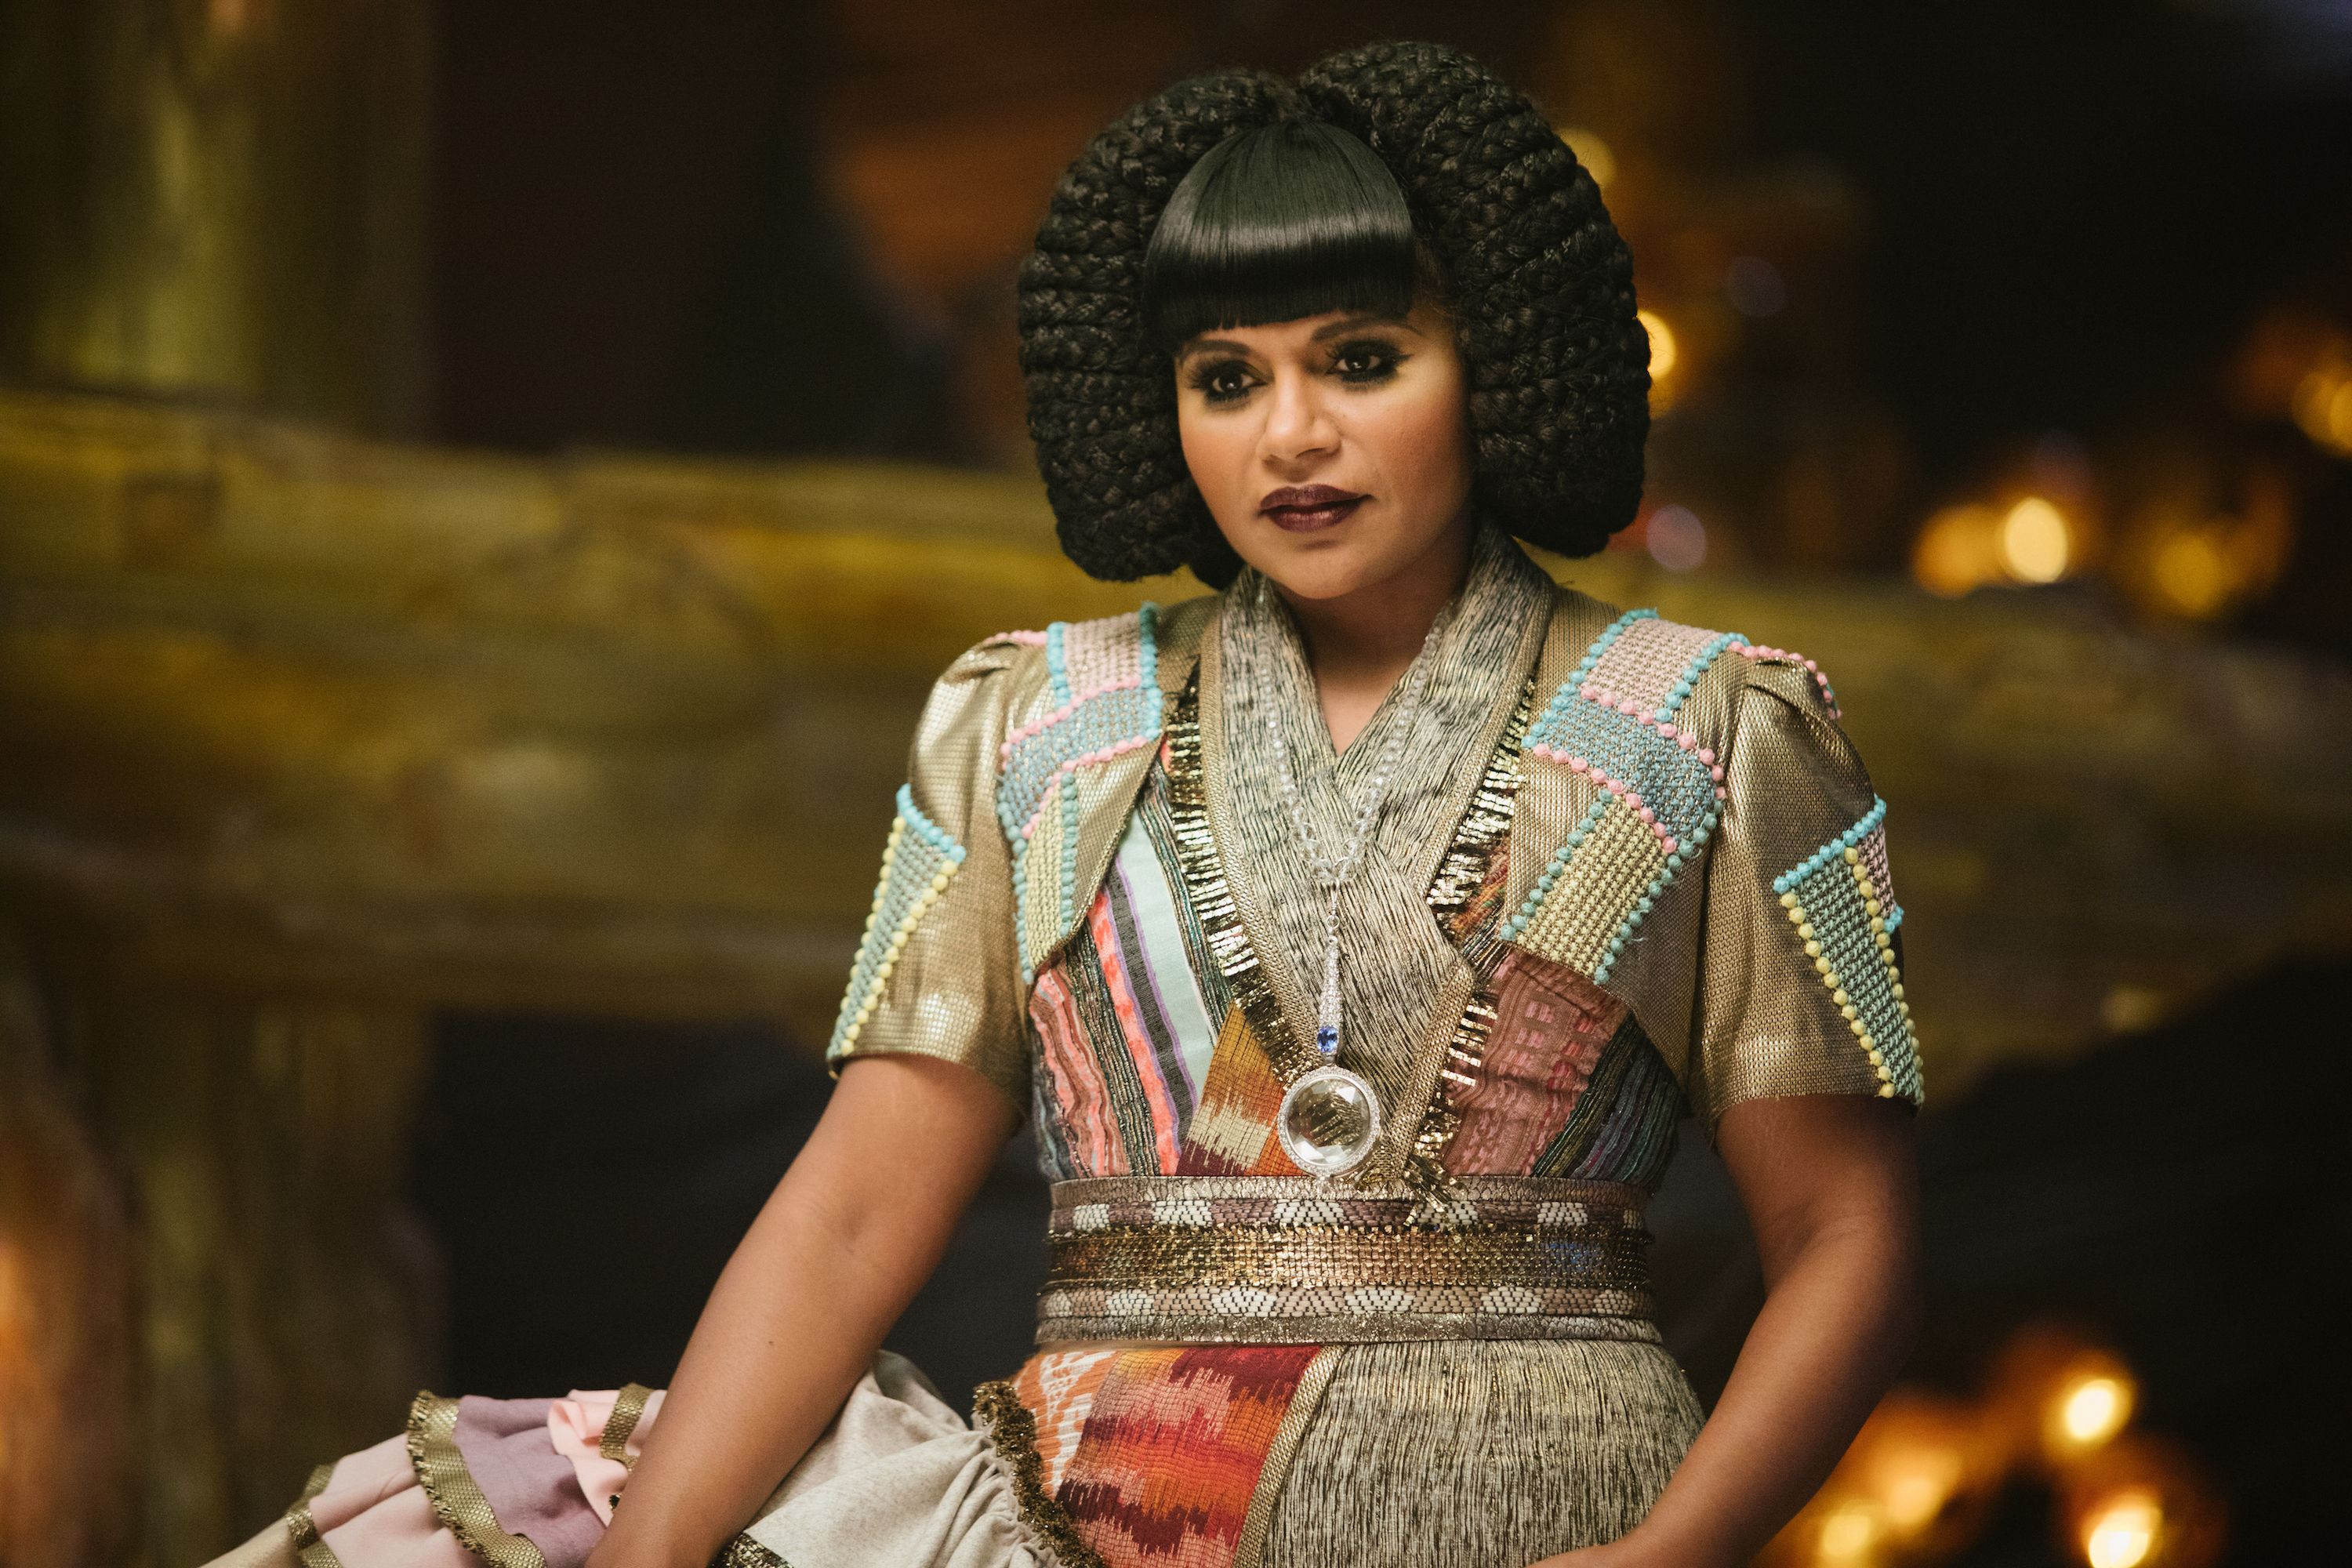 Mindy Kaling as Mrs. Who in A Wrinkle in Time